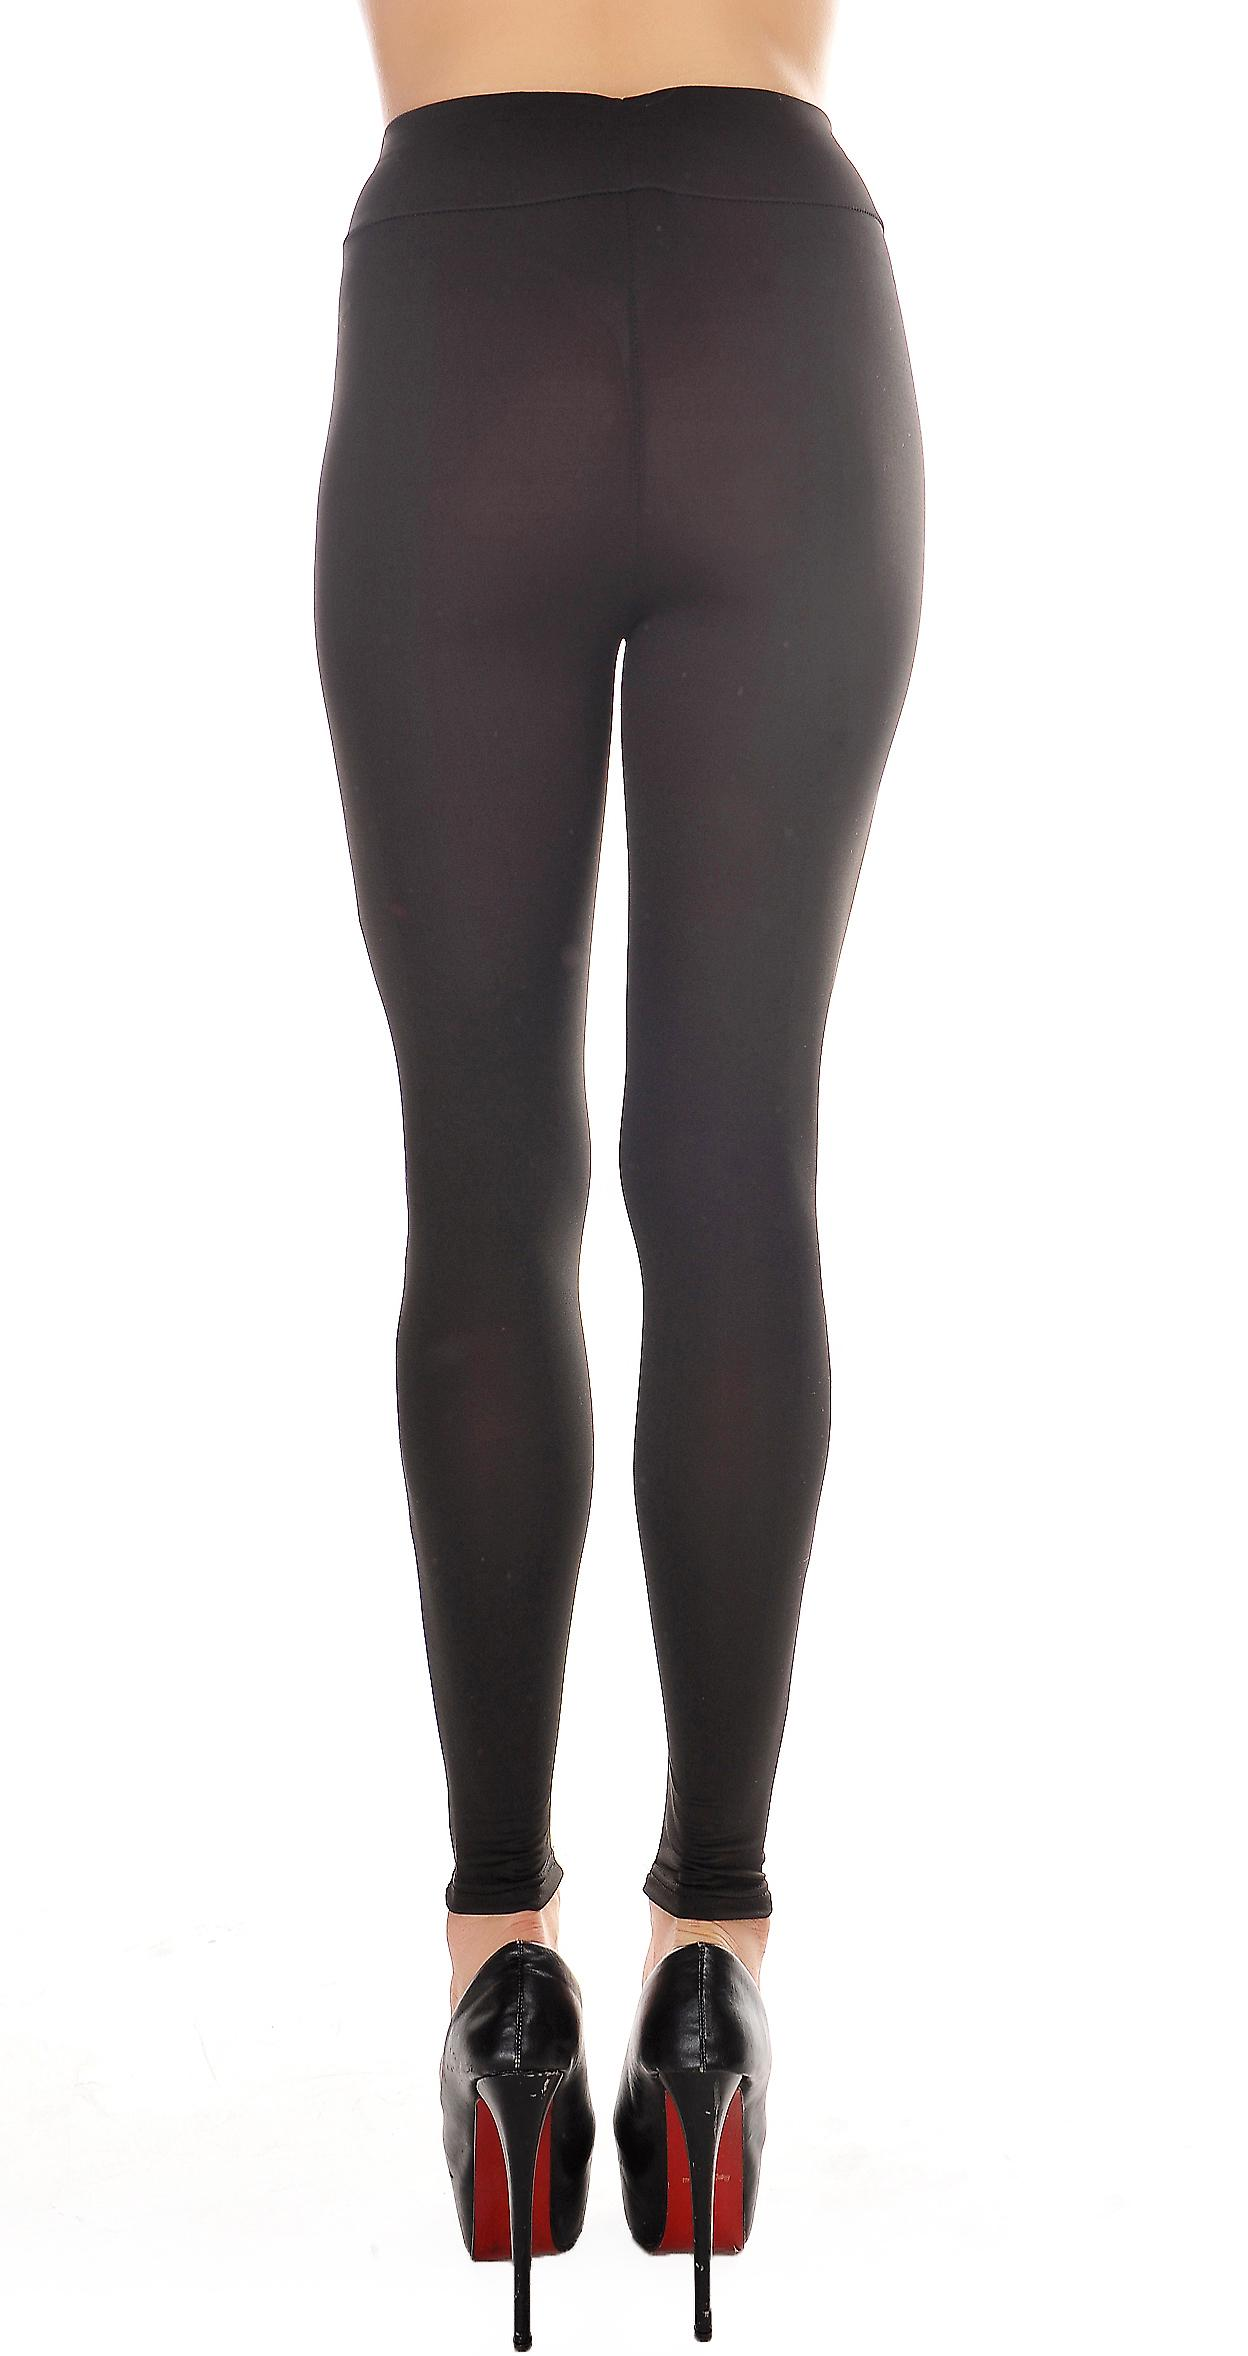 Waooh - Fashion - Legging bicolor